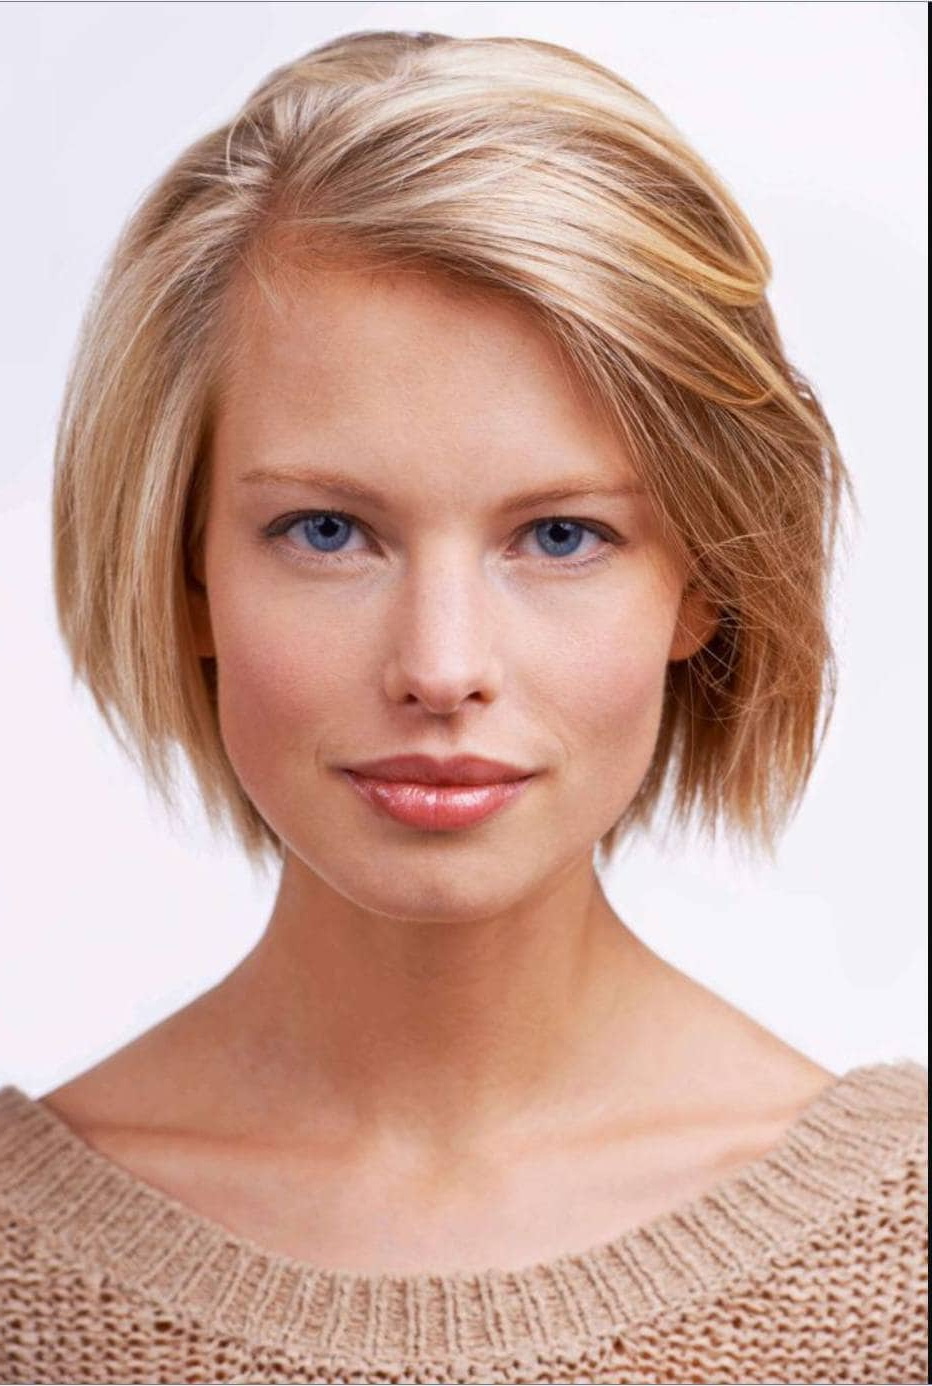 34 Cool Ways To Wear Strawberry Red Blonde Hair: Tones, Shades And Within Strawberry Blonde Short Hairstyles (View 18 of 25)